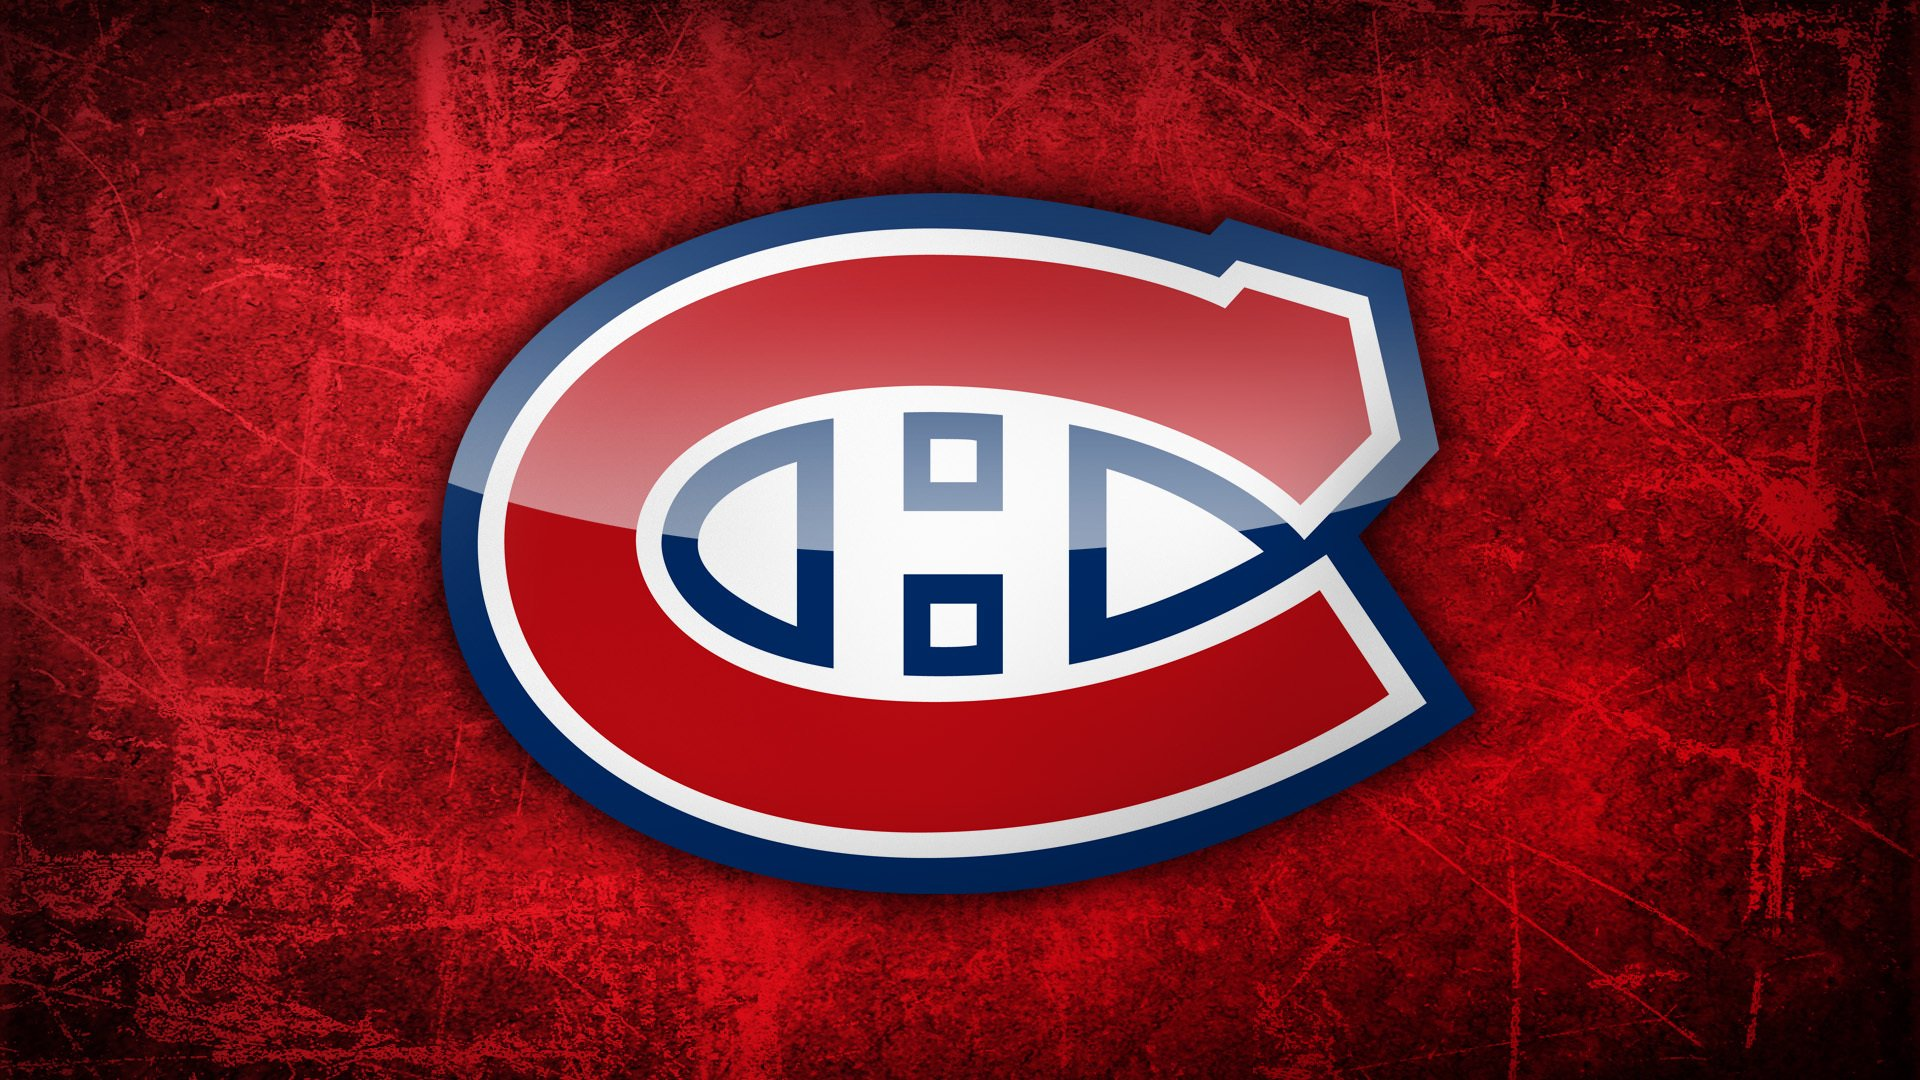 NHL Montreal Canadiens Montreal hockey wallpaper 1920x1080 125359 1920x1080